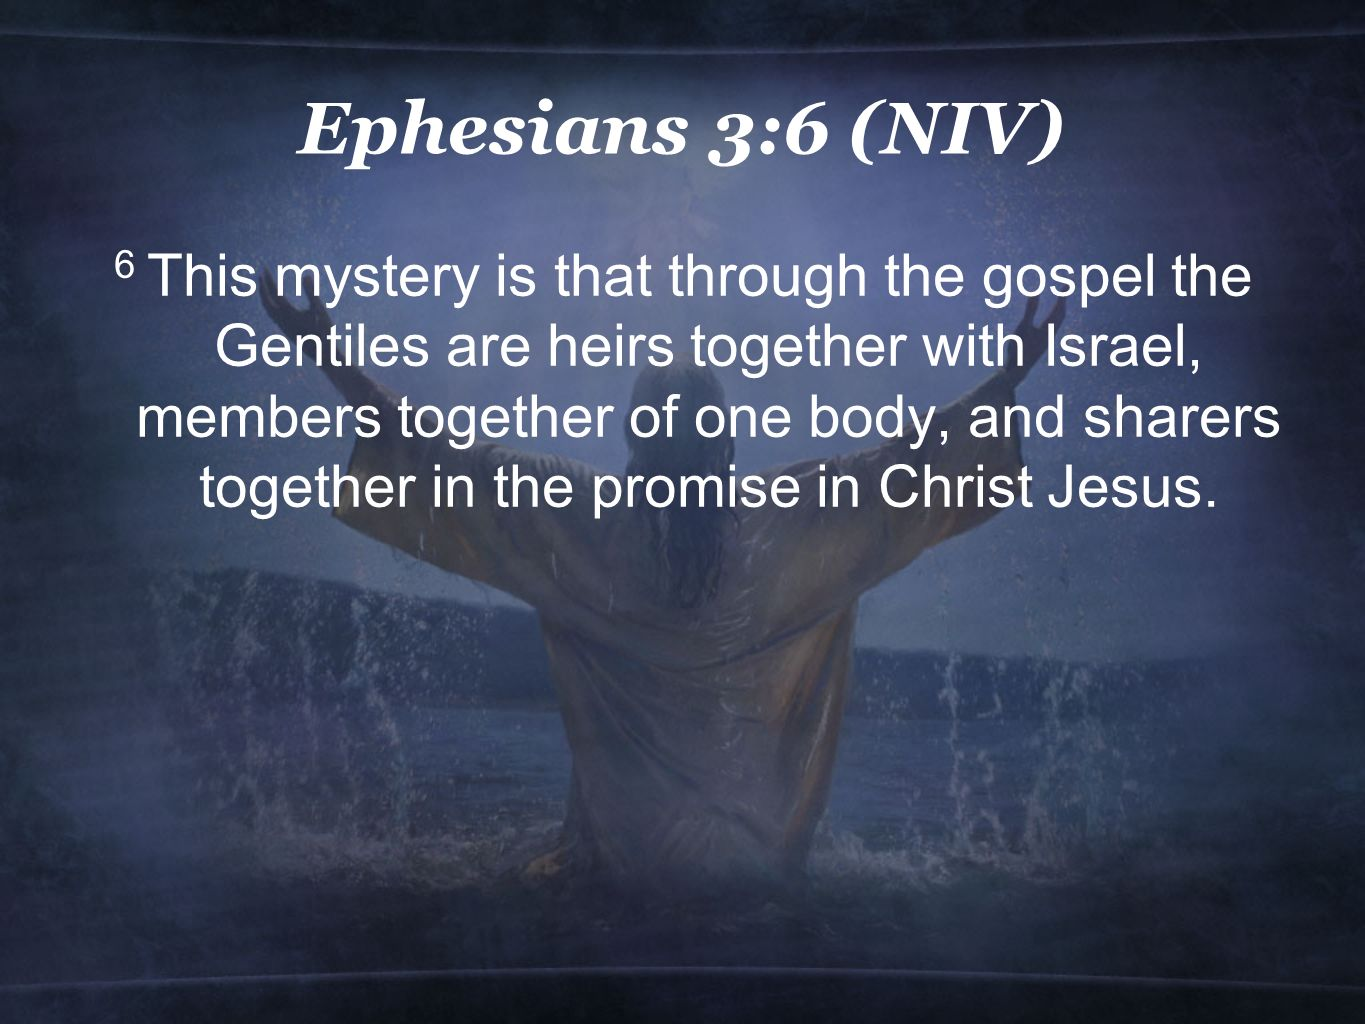 Ephesians 3:6 (NIV) 6 This mystery is that through the gospel the Gentiles are heirs together with Israel, members together of one body, and sharers together in the promise in Christ Jesus.